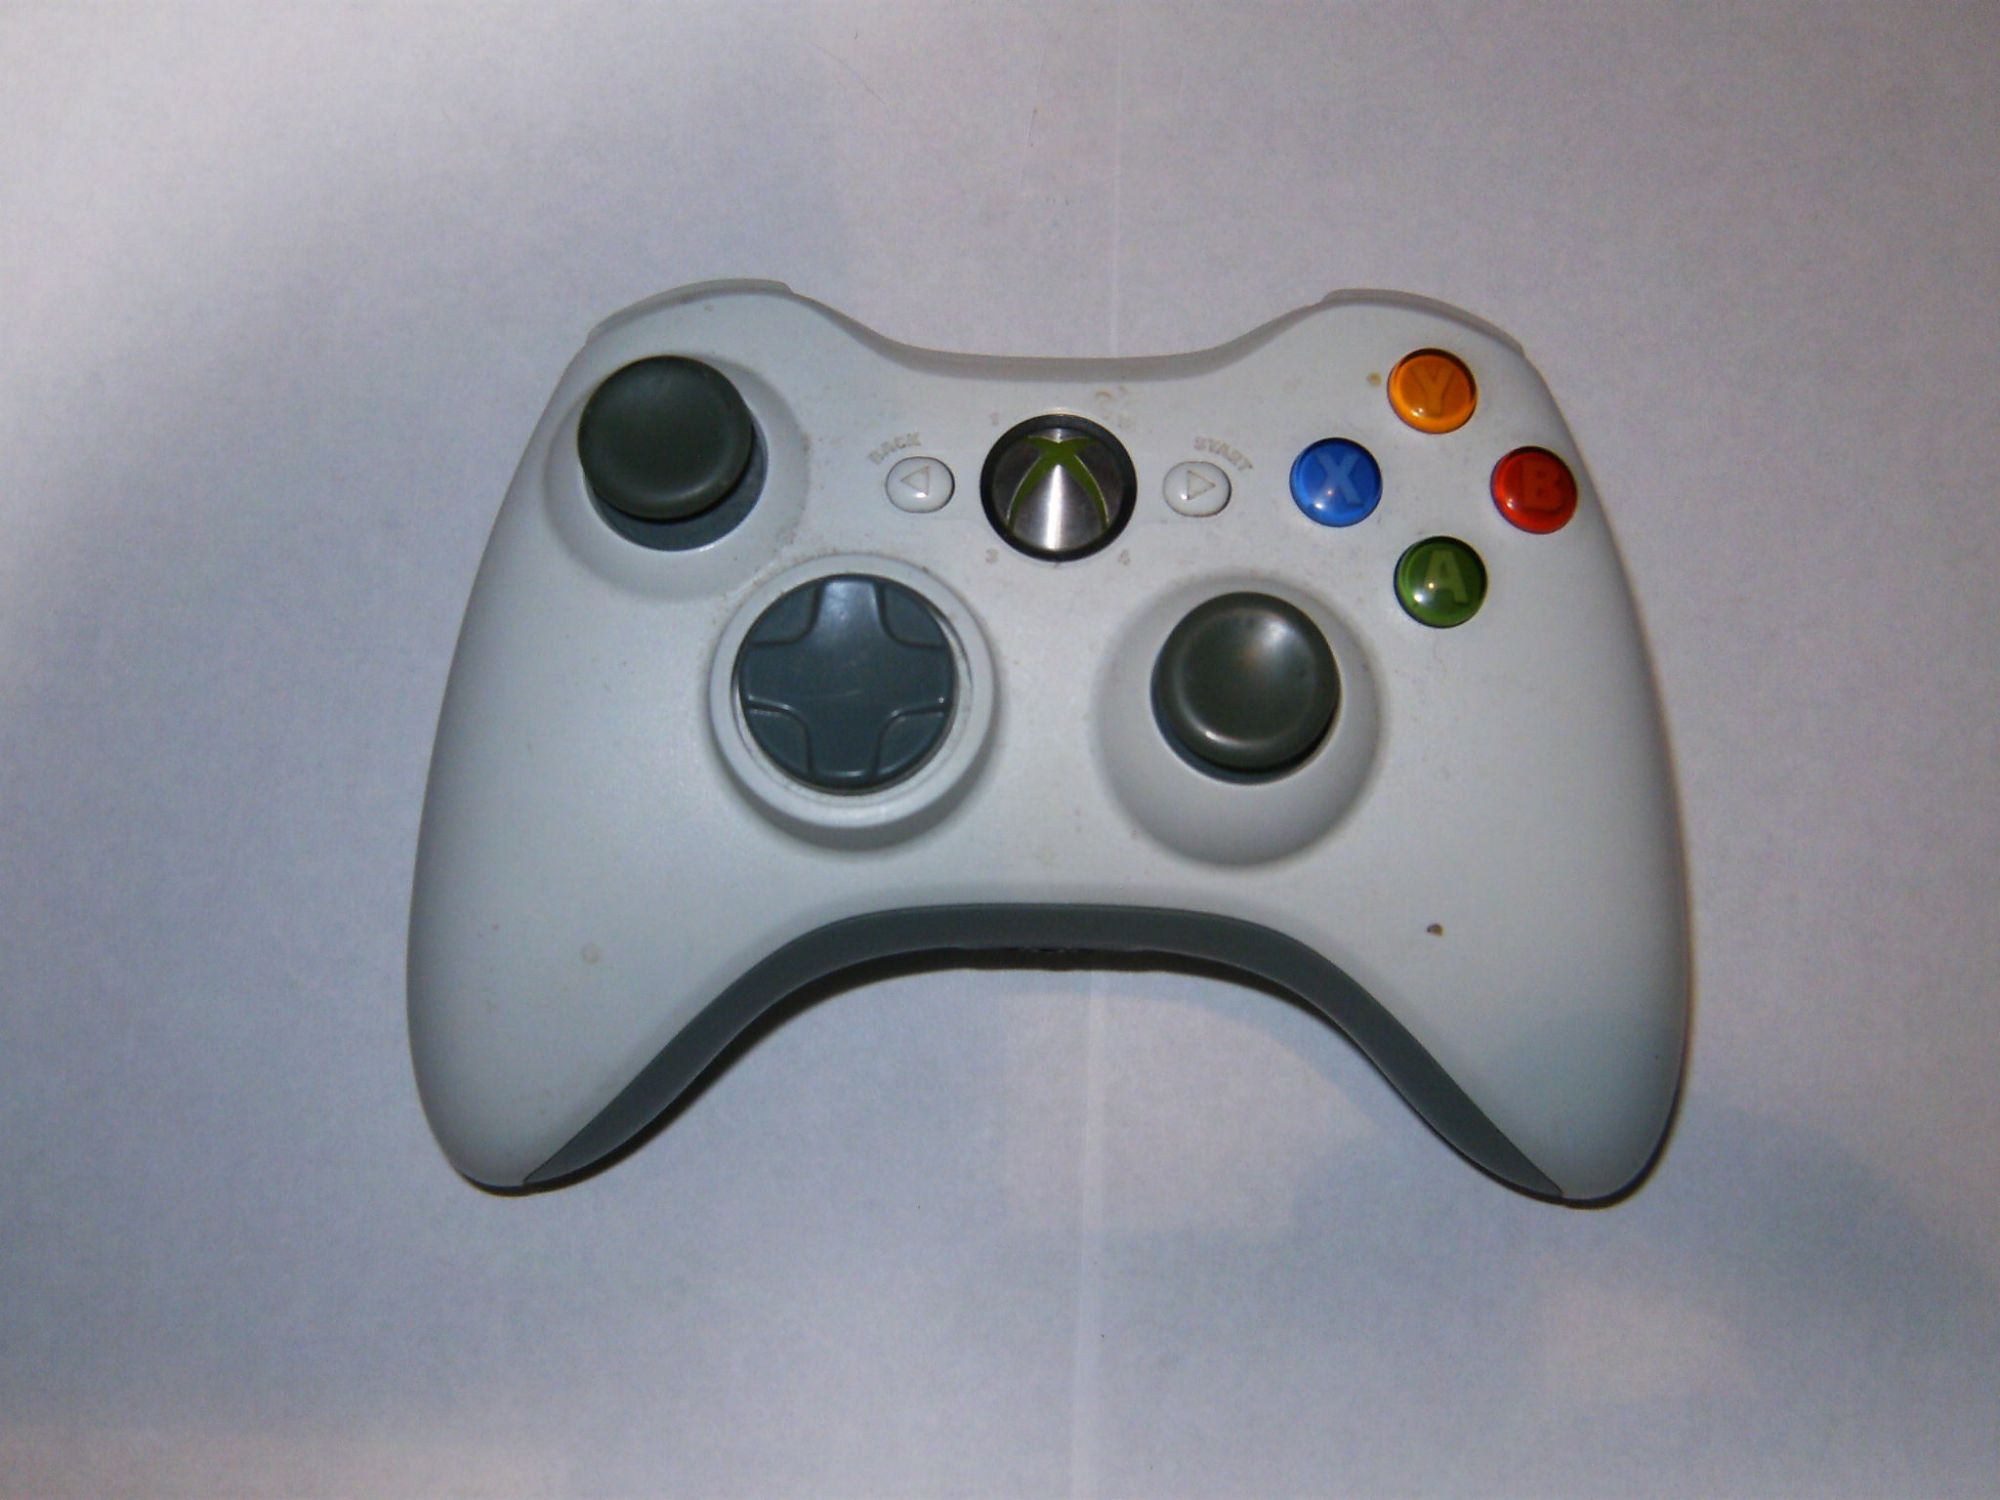 hight resolution of xbox 360 wireless controller left analog stick replacement ifixit repair guide